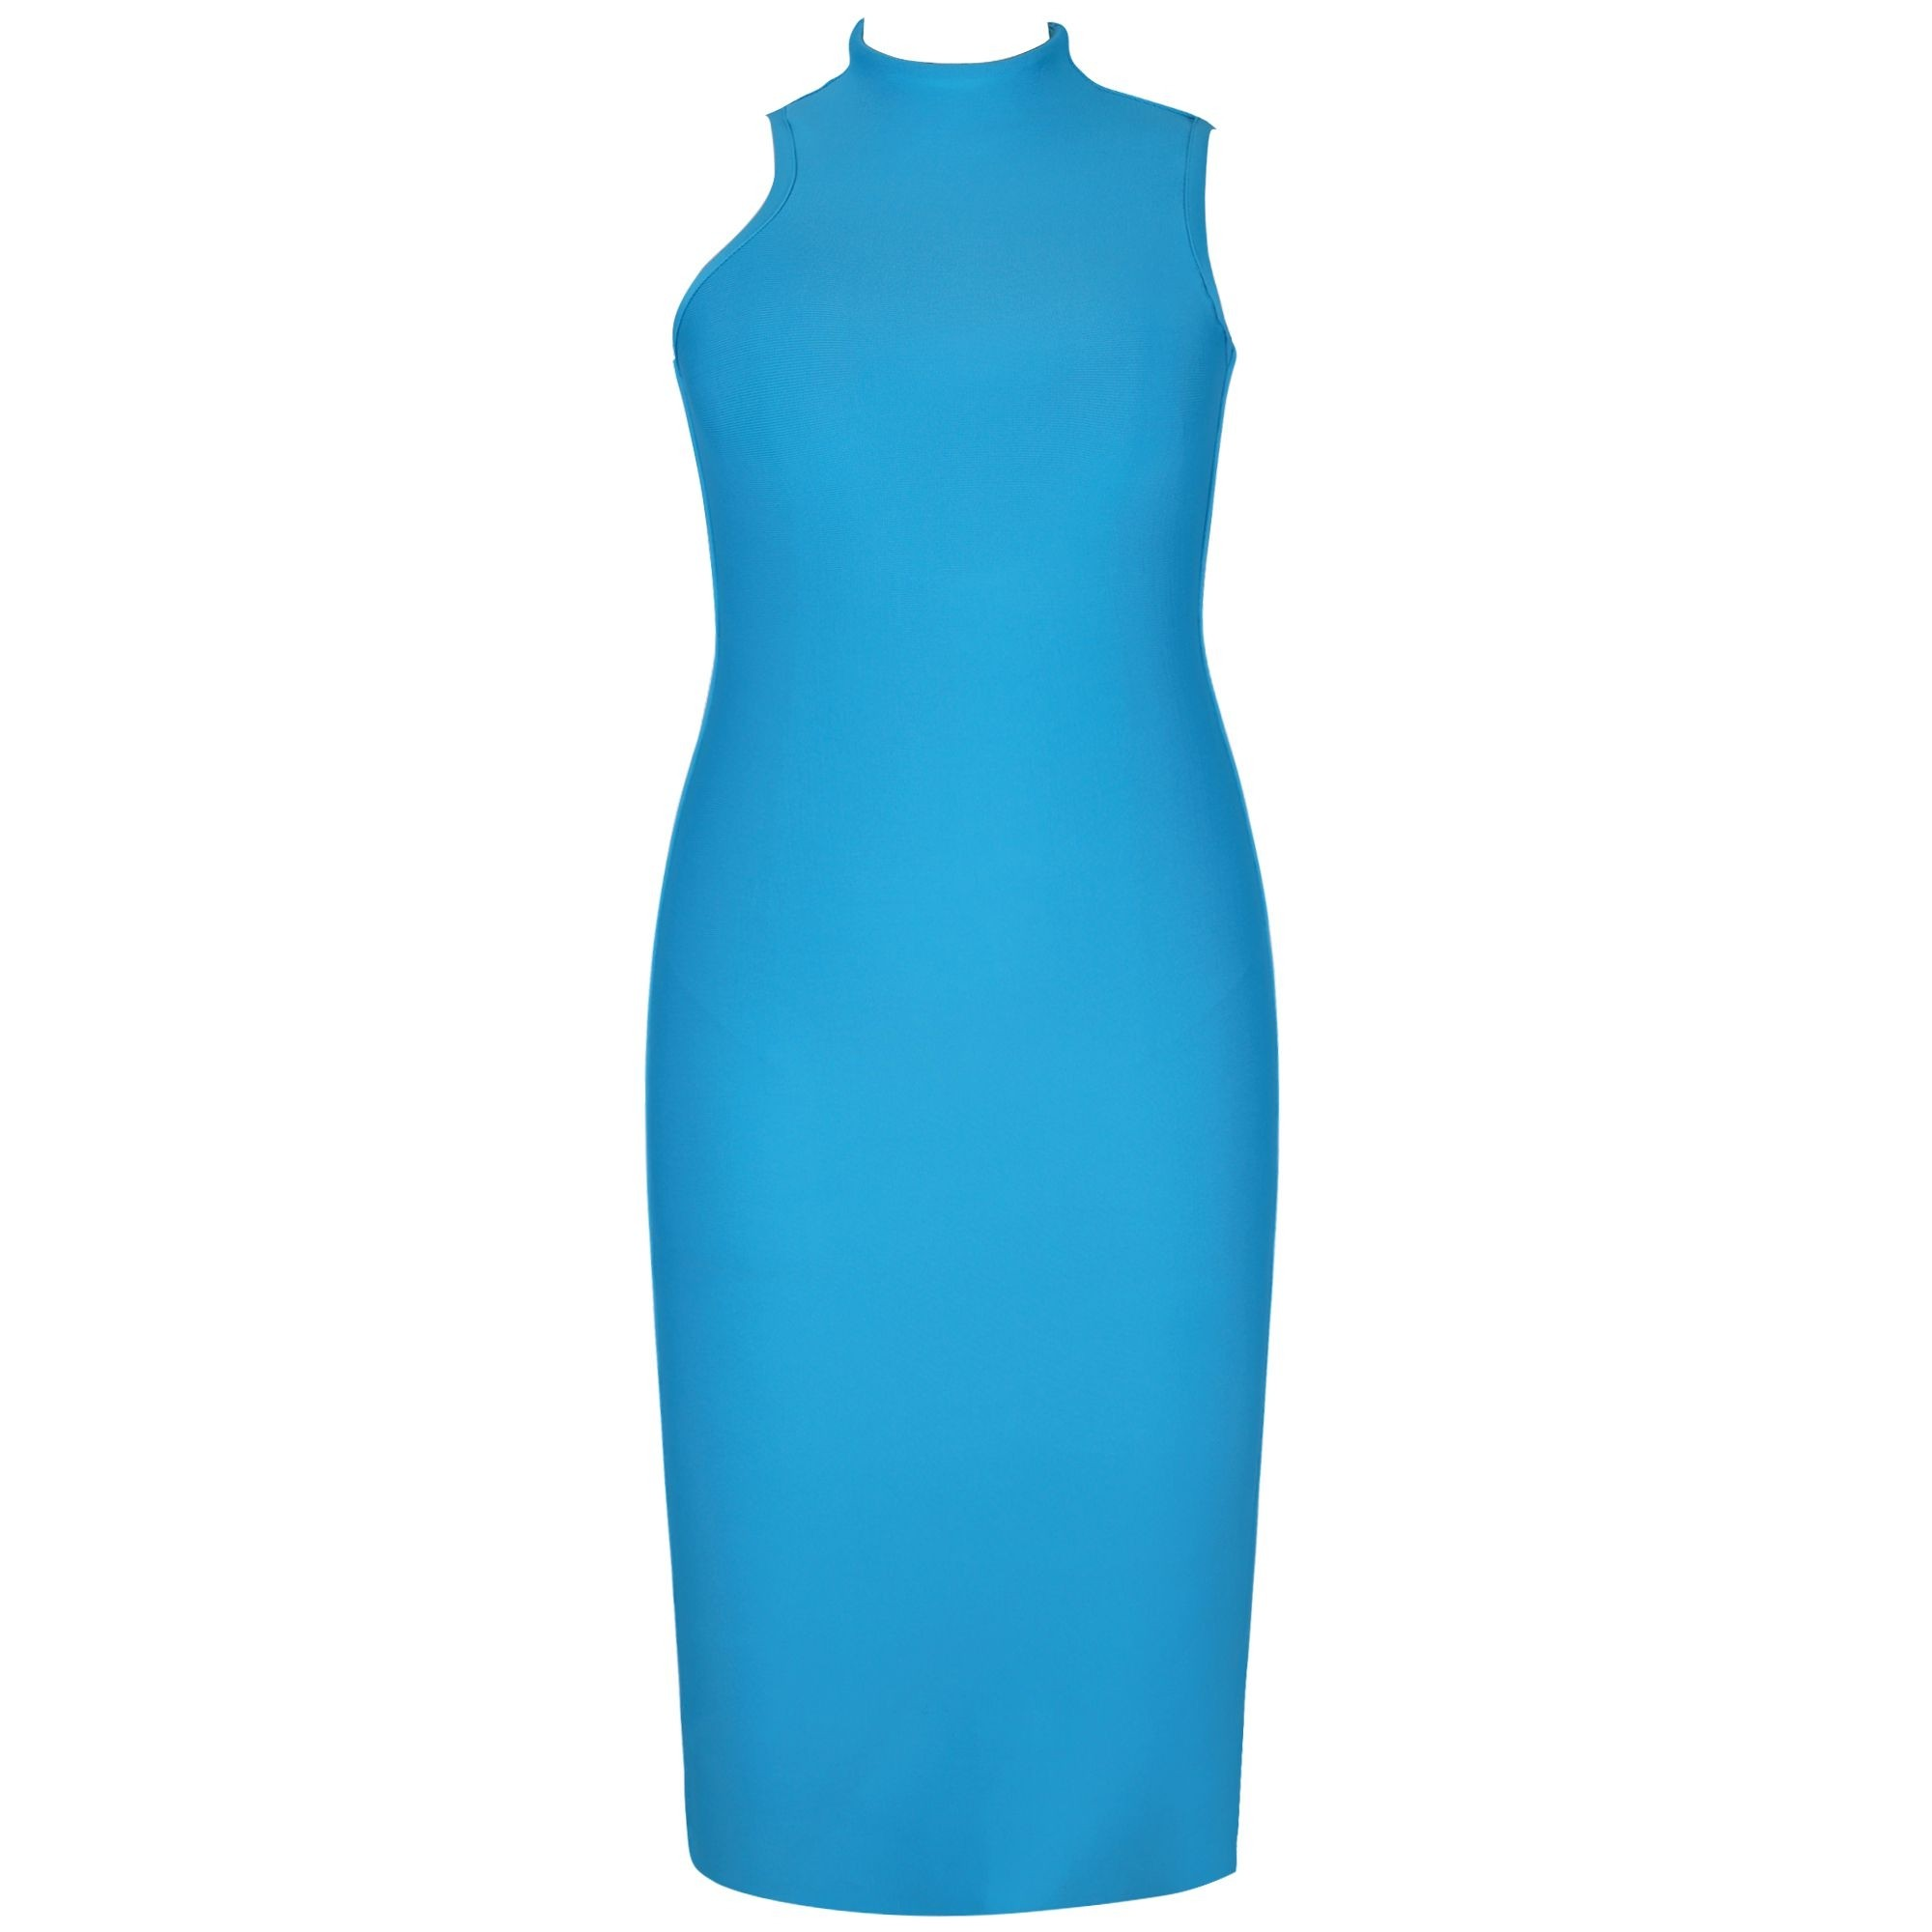 Blue Round Neck Sleeveless Over Knee Fashion Bandage Dress PPHK053-Blue